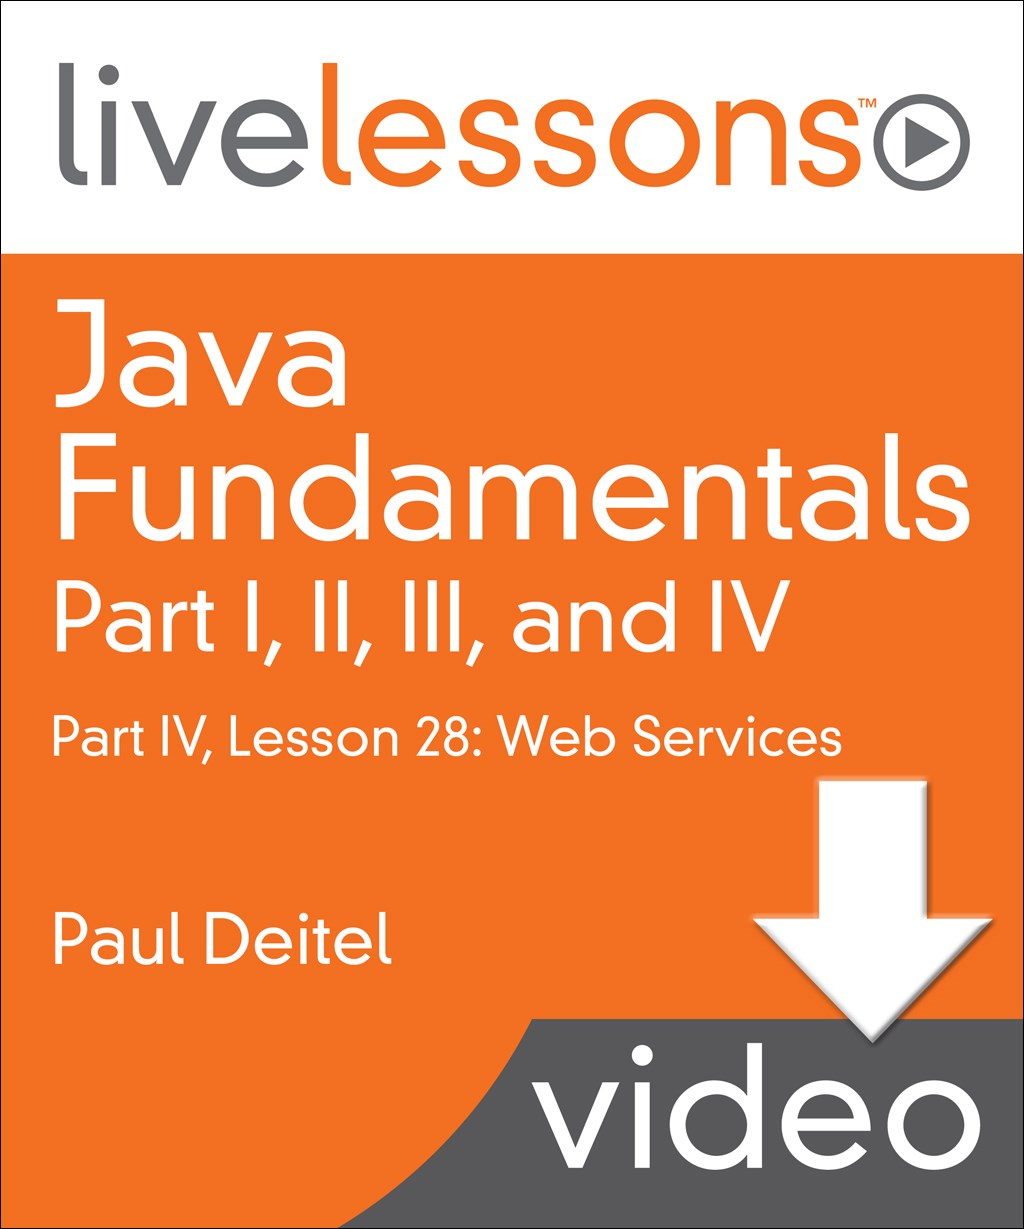 Java Fundamentals LiveLessons Parts I, II, III, and IV (Video Training): Part IV, Lesson 28: Web Services, Downloadable Version